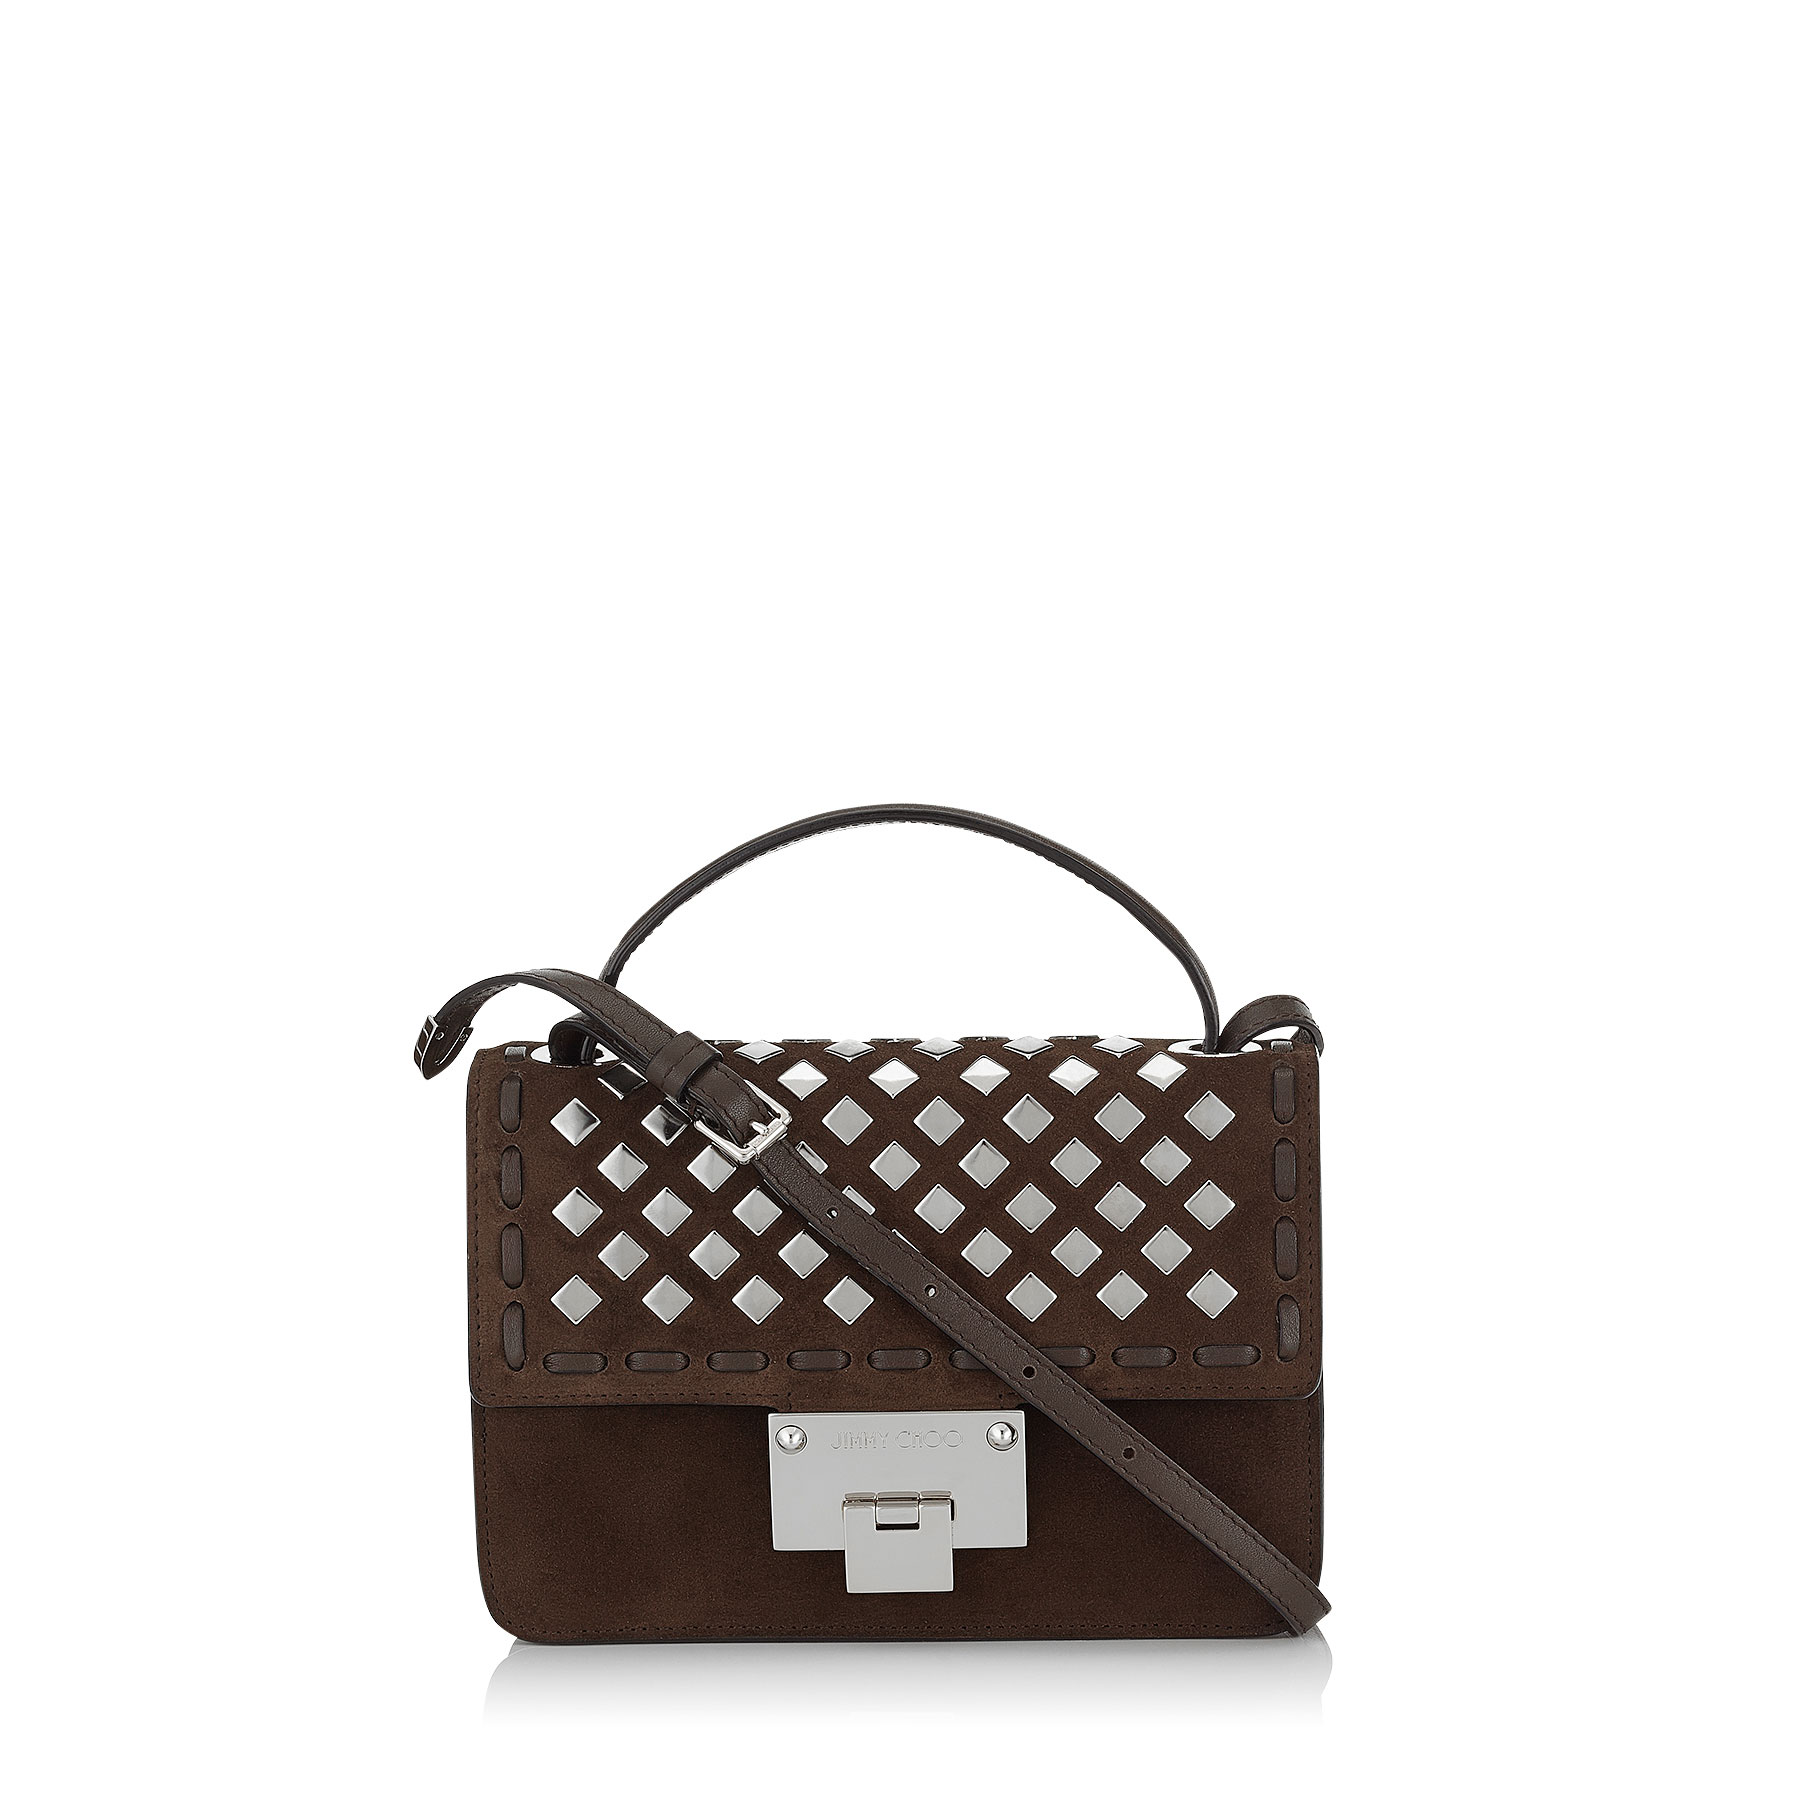 REBEL Pecan Suede with Square Studded Application Cross Body Bag